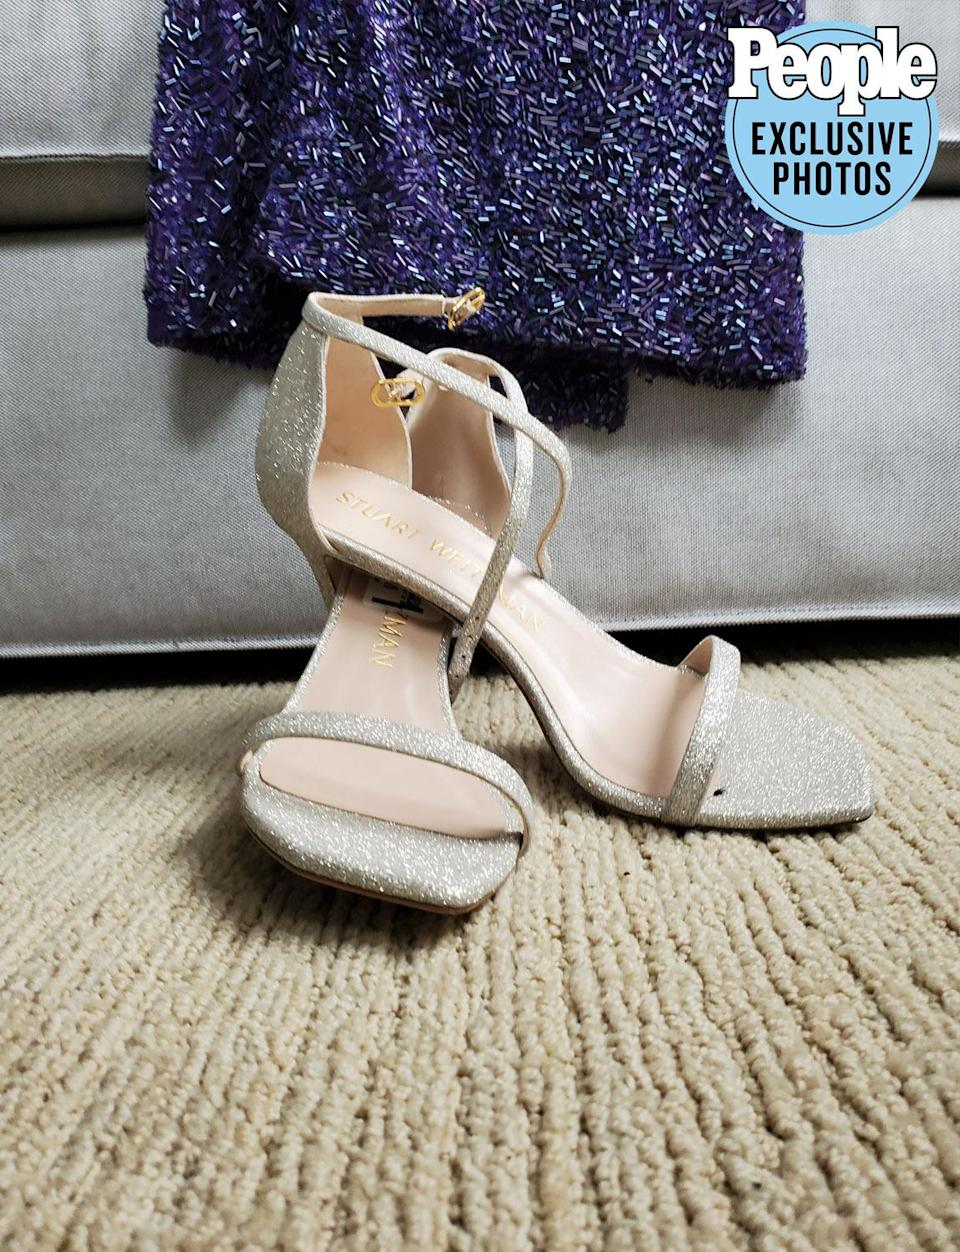 <p>I will be standing for a while so I need some comfy shoes. (These are from Stuart Weitzman.) Also, what color would you call my dress? Or am I even wearing a dress?</p>